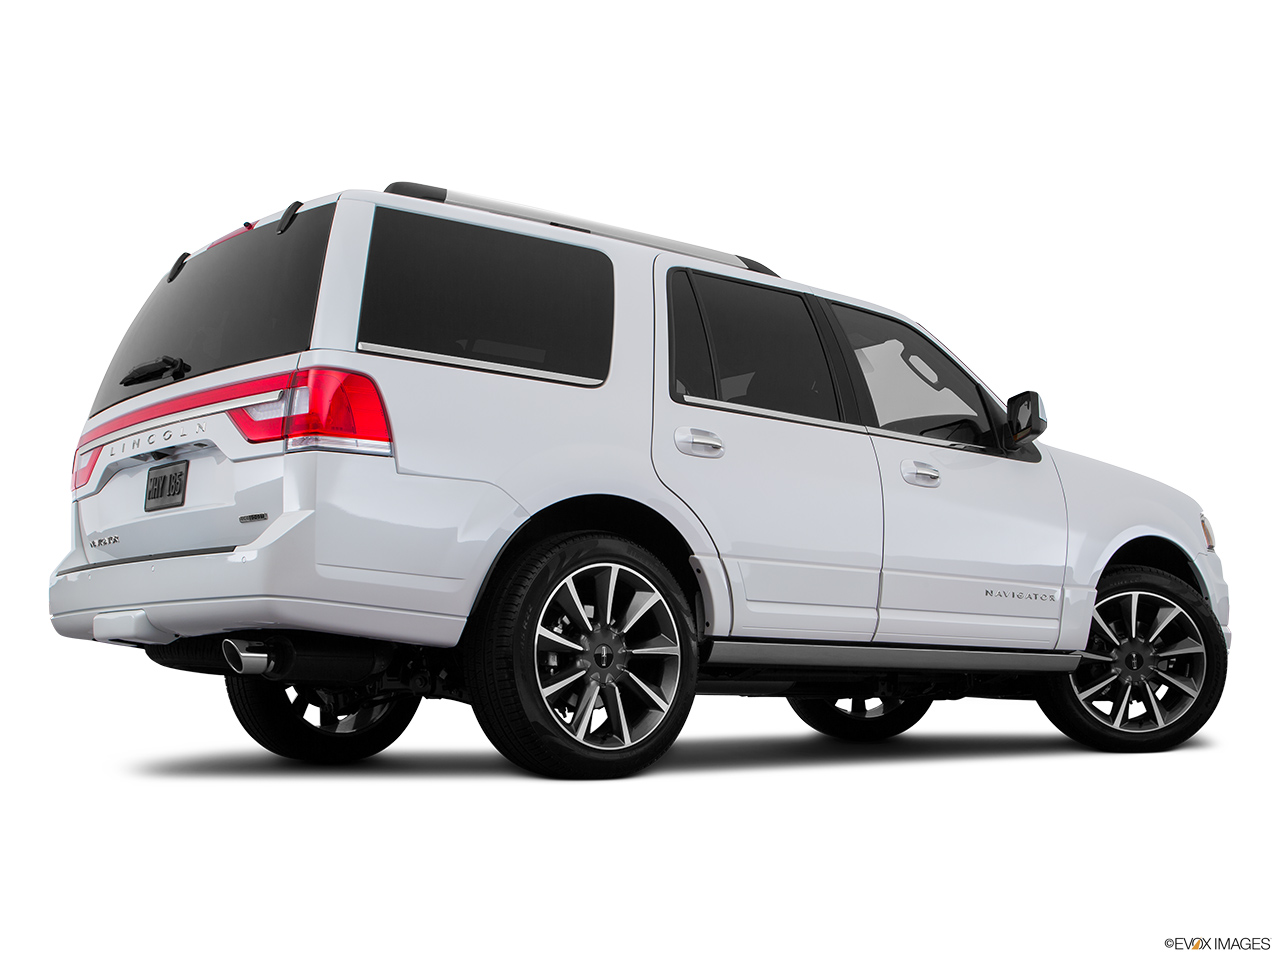 2016 Lincoln Navigator Reserve Low/wide rear 5/8.